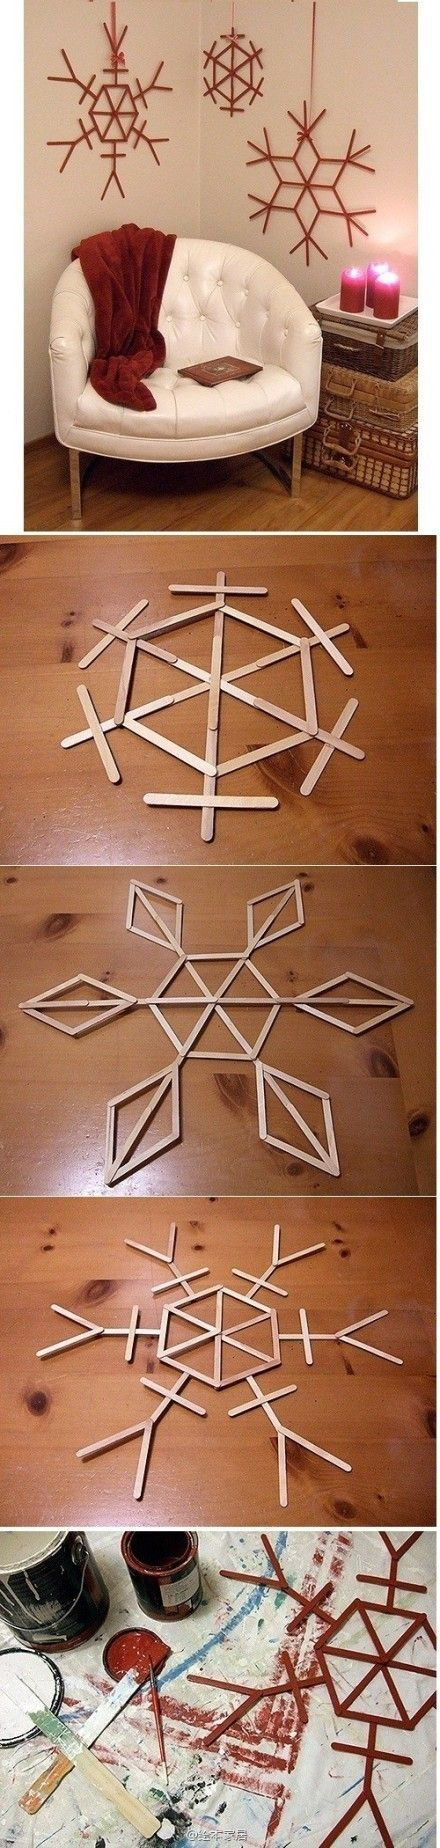 snowflakes for the wall. (Link is foreign). Design with craft sticks--glue as desired. Paint (could use glitter, too!). Apply fixative to protect. Hang with yarn or ribbon.